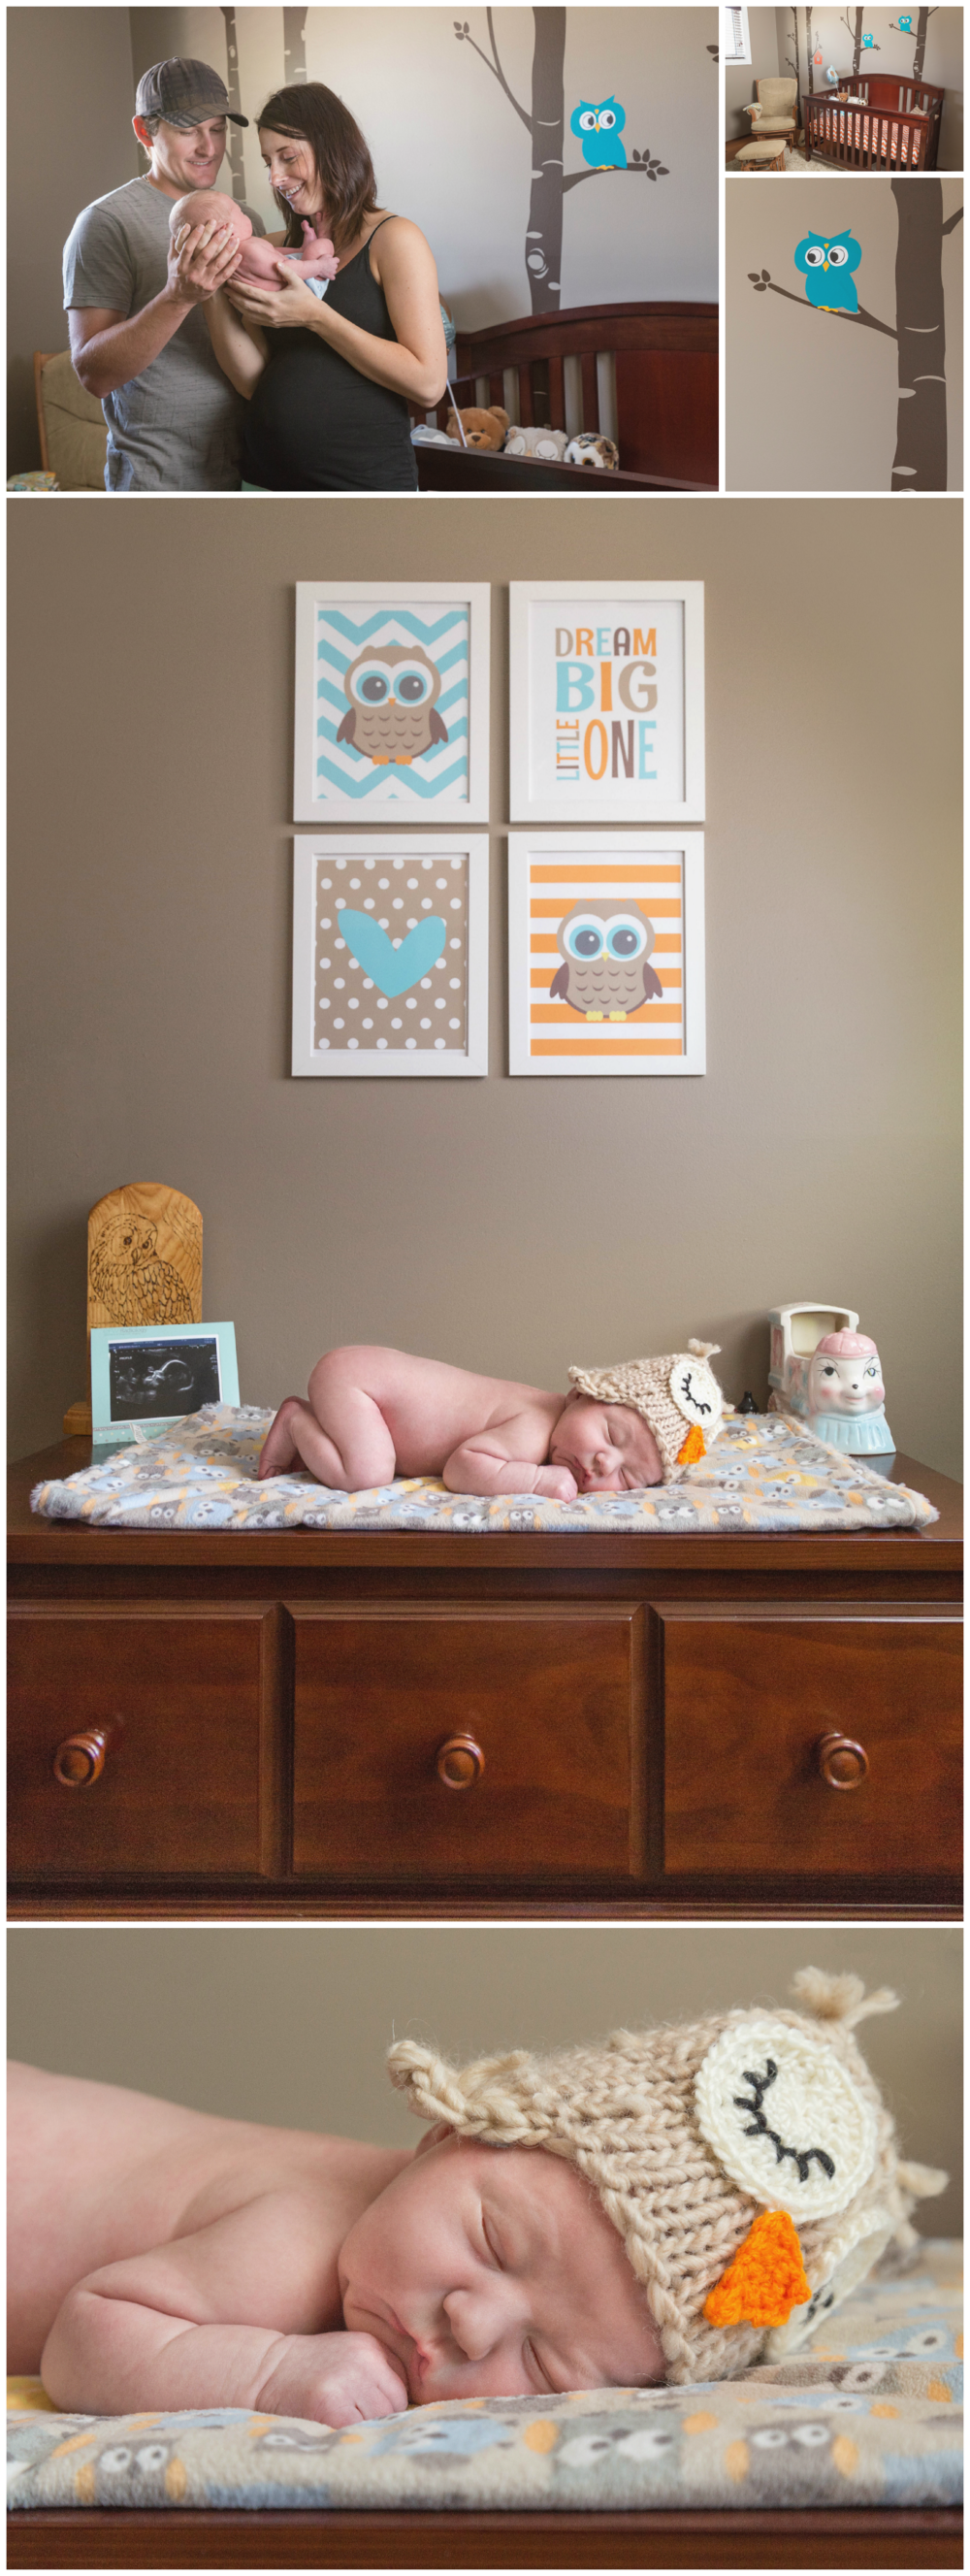 medicine-hat-maternity-photographer_06.png